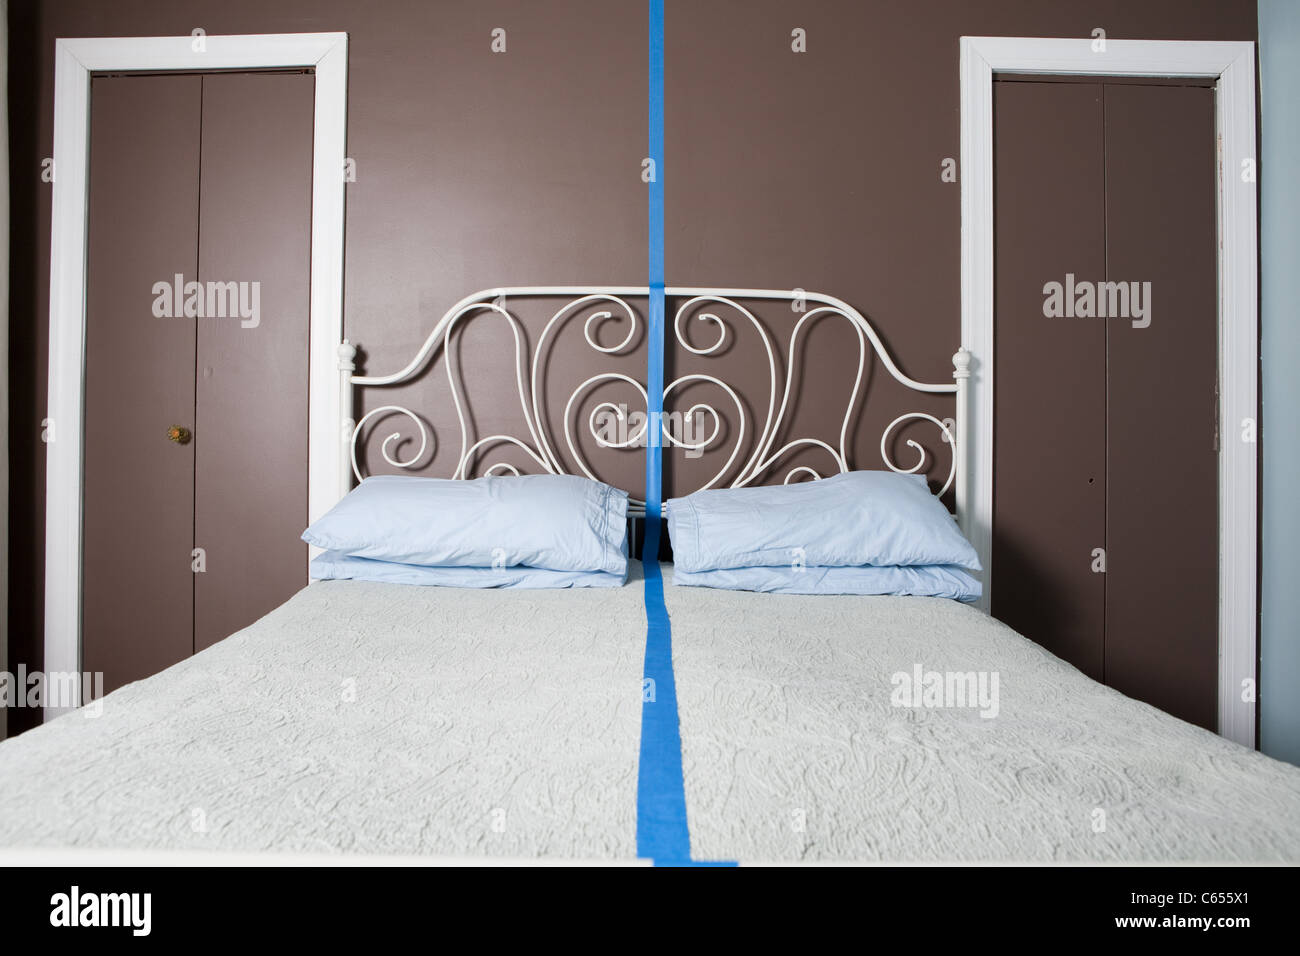 Double bed separated by blue line - Stock Image